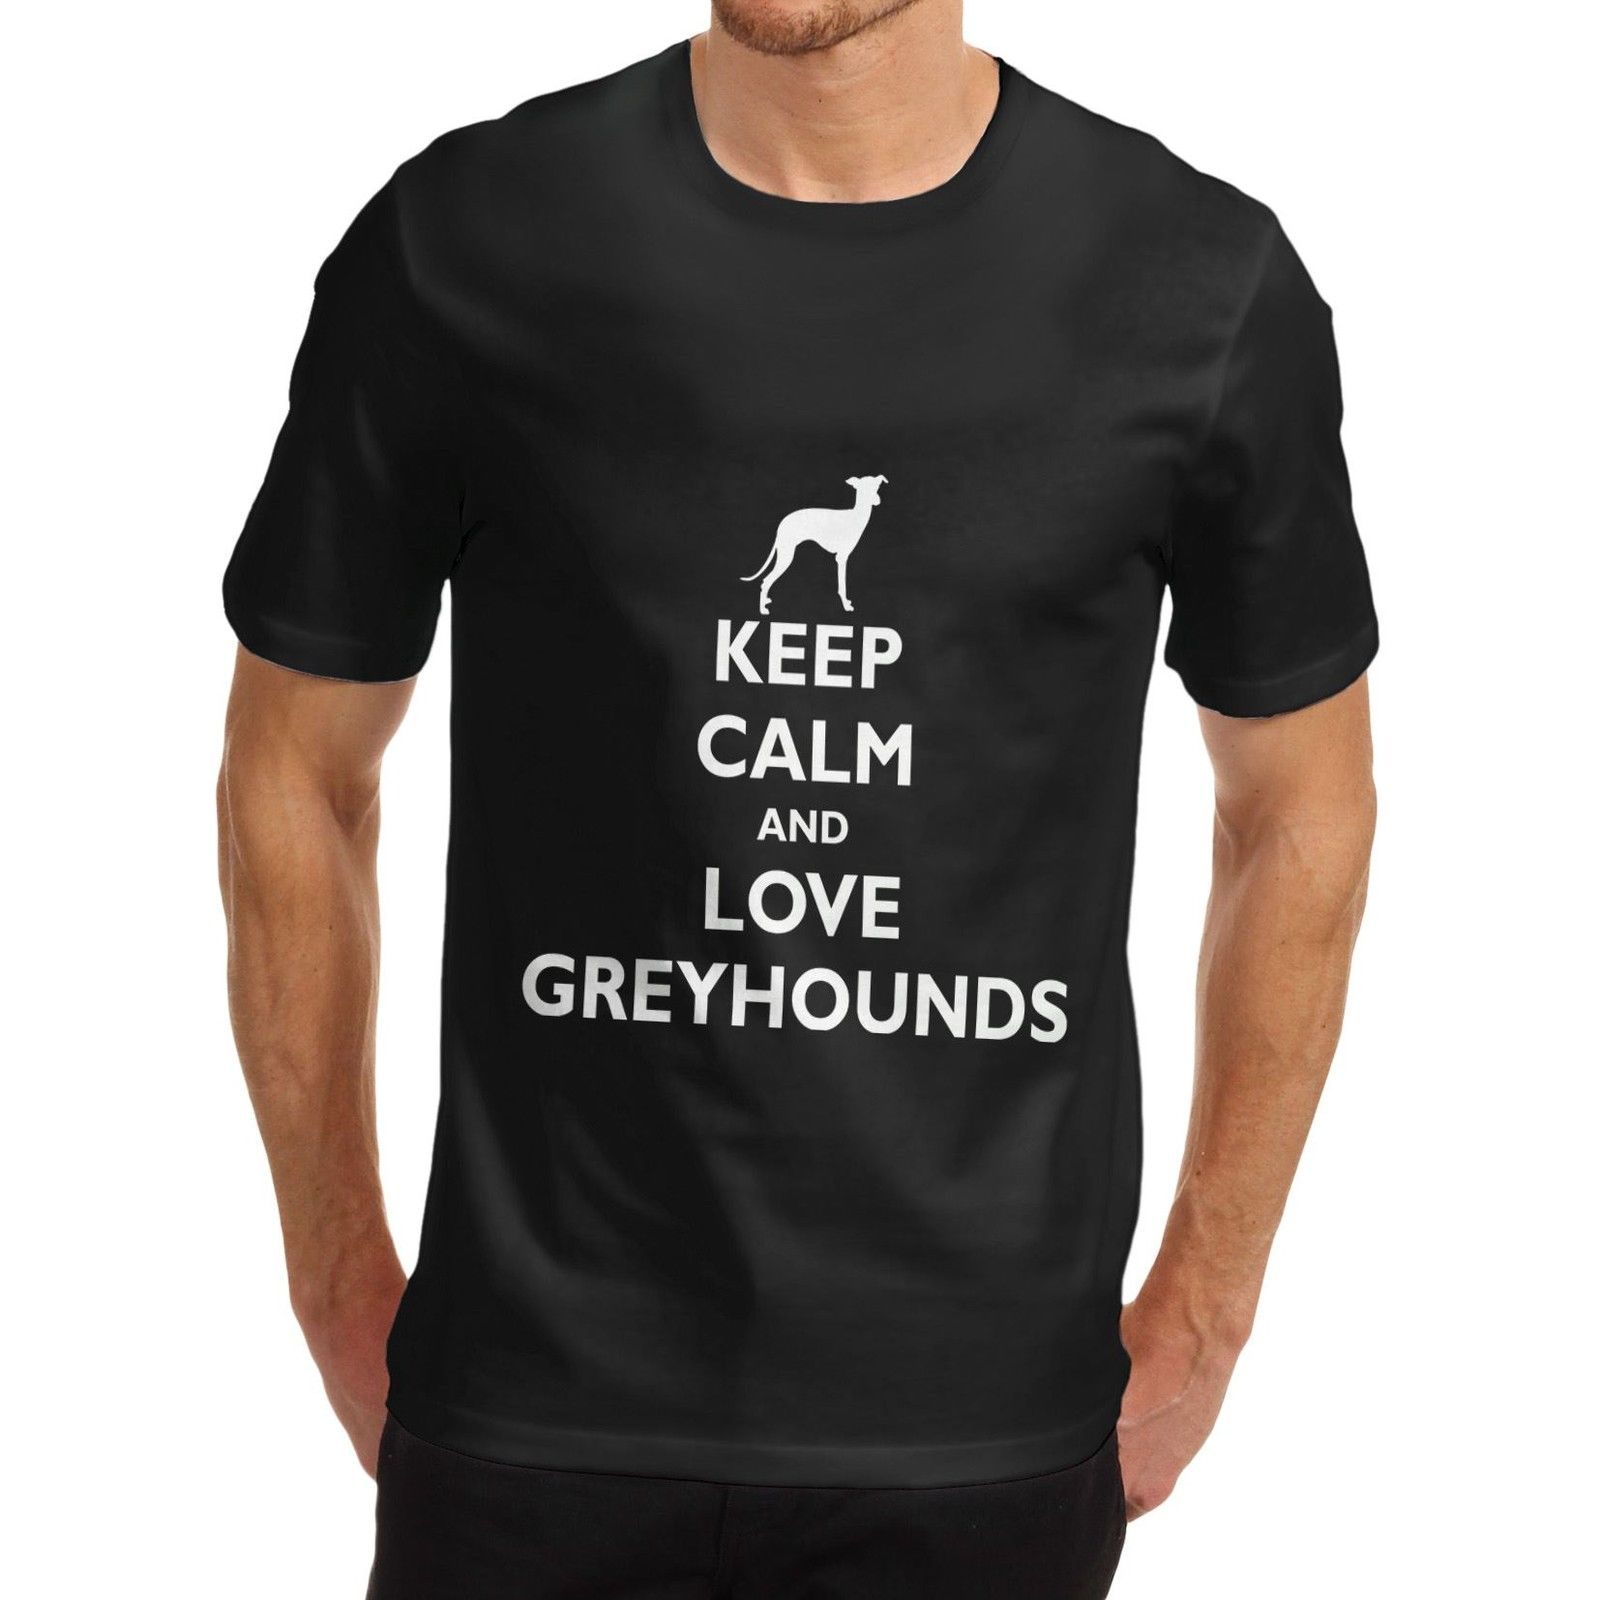 Mens Keep Calm and Love Greyhounds Novelty T-Shirt Men T Shirt 100% Cotton Print Shirts Short Sleeve Brand